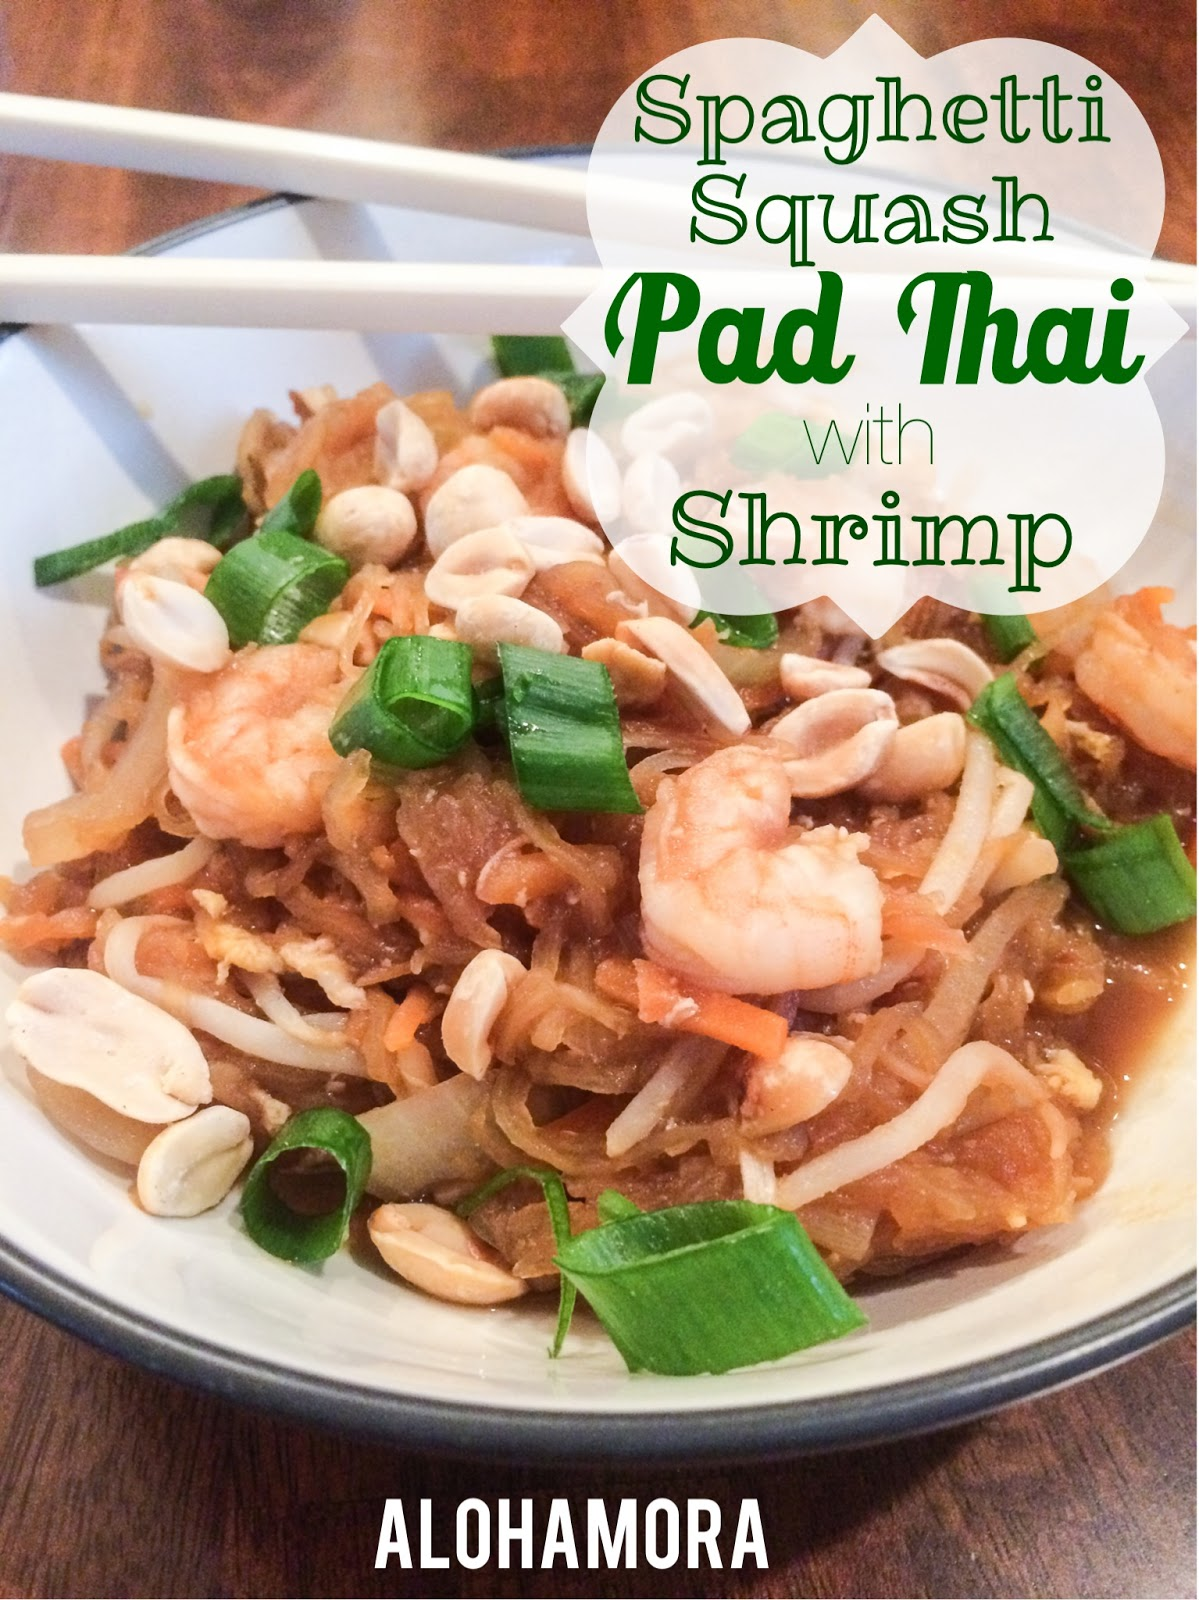 Spaghetti Squash Pad Thai with Shrimp.  A healthier version of Pad Thai and all around tasty, delicious, easy, and fast ethnic food. Alohamora Open a Book http://www.alohamoraopenabook.blogspot.com/